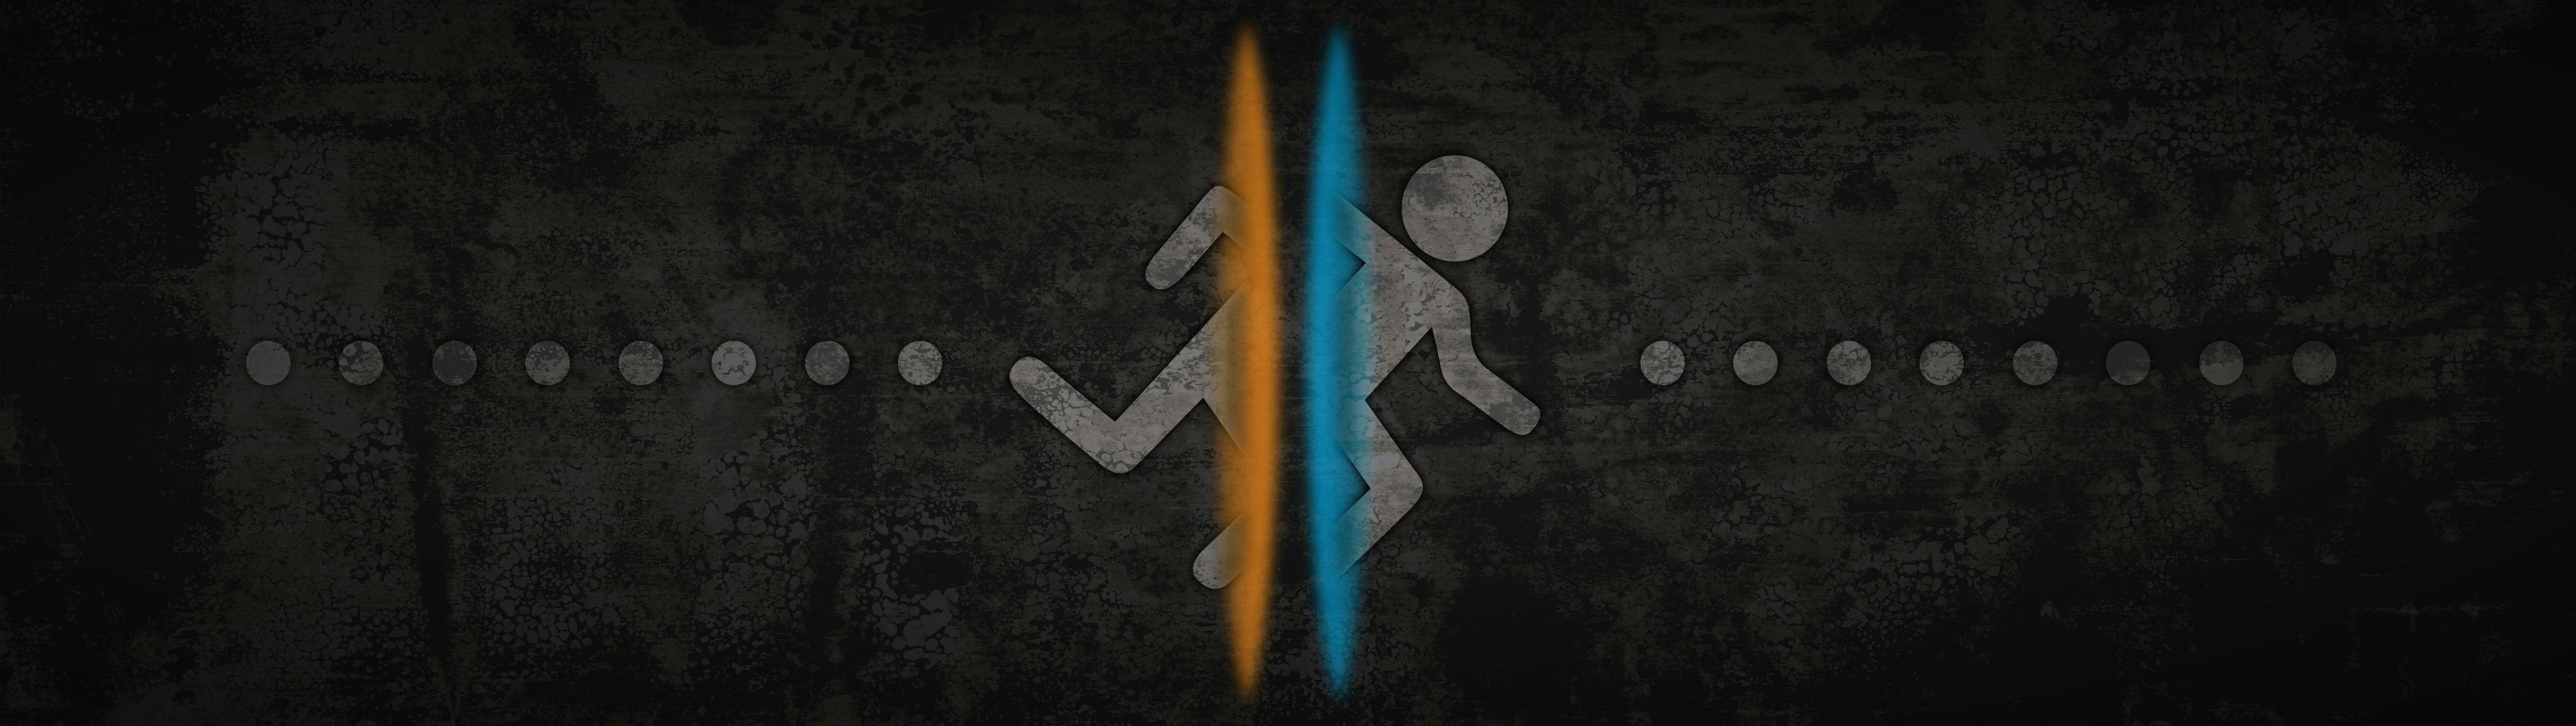 Portal 2 Dual Screen Wallpaper gaming 3830x1080